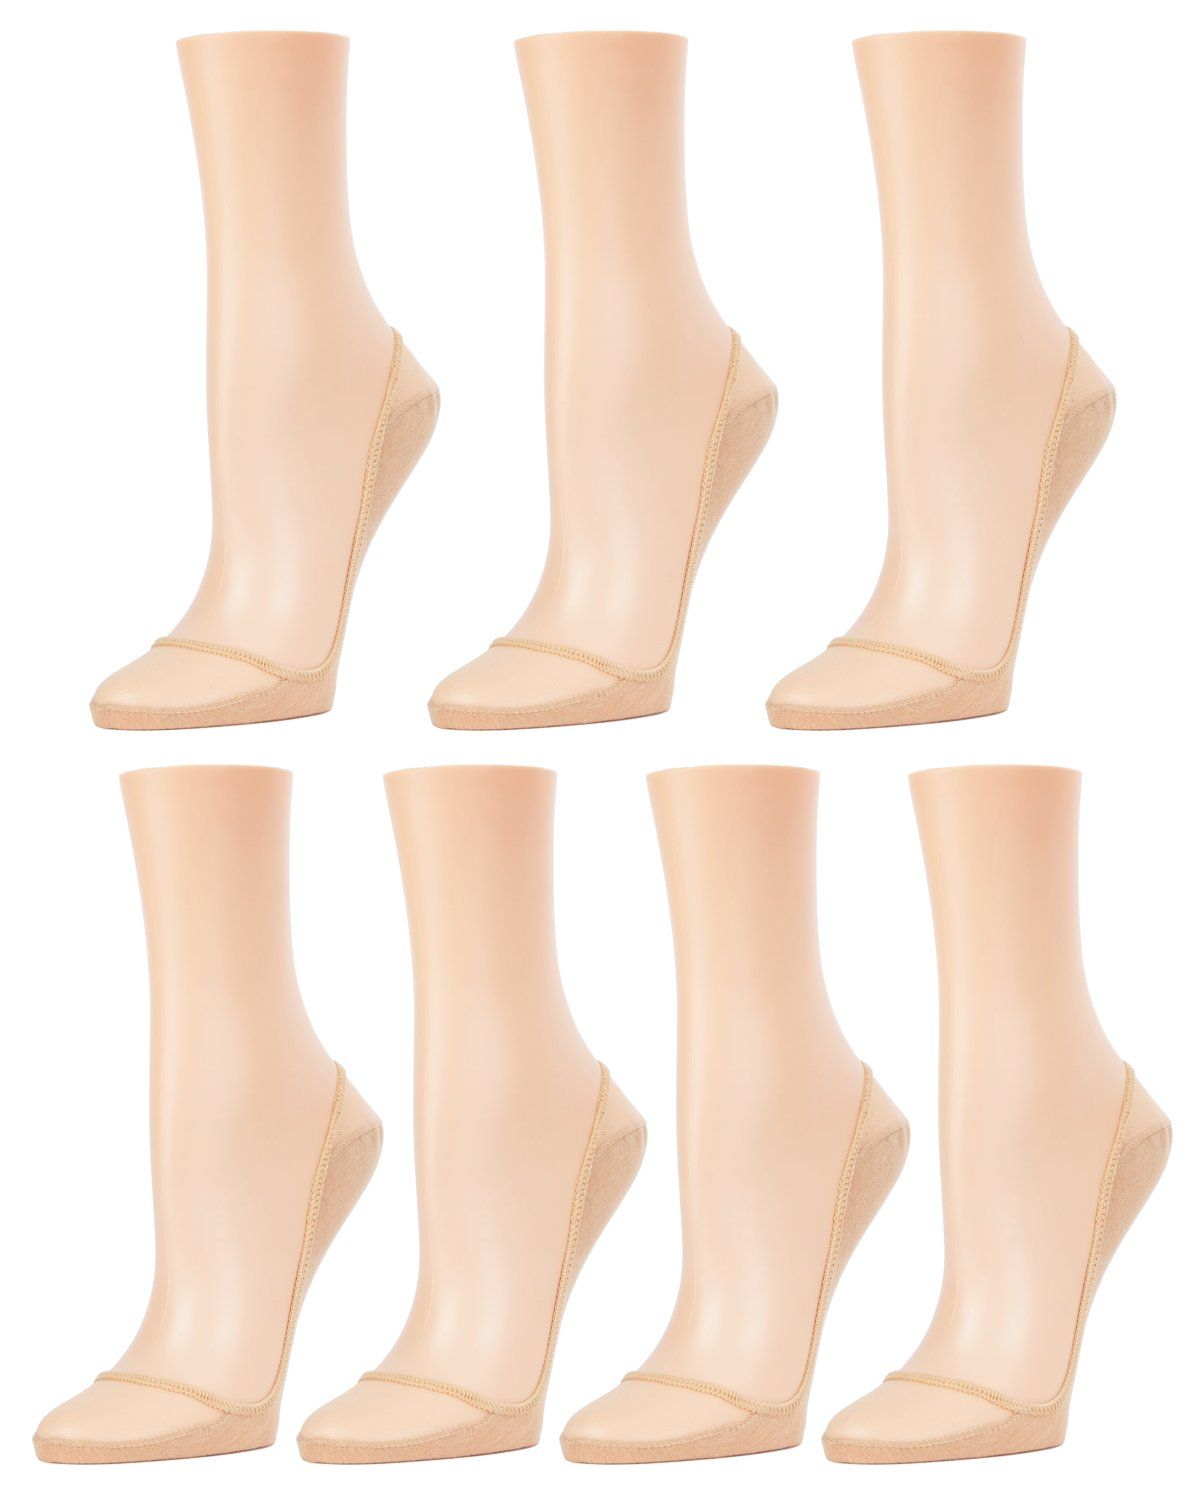 Sheer Top Cotton Sole Liner 7 Pair Pack